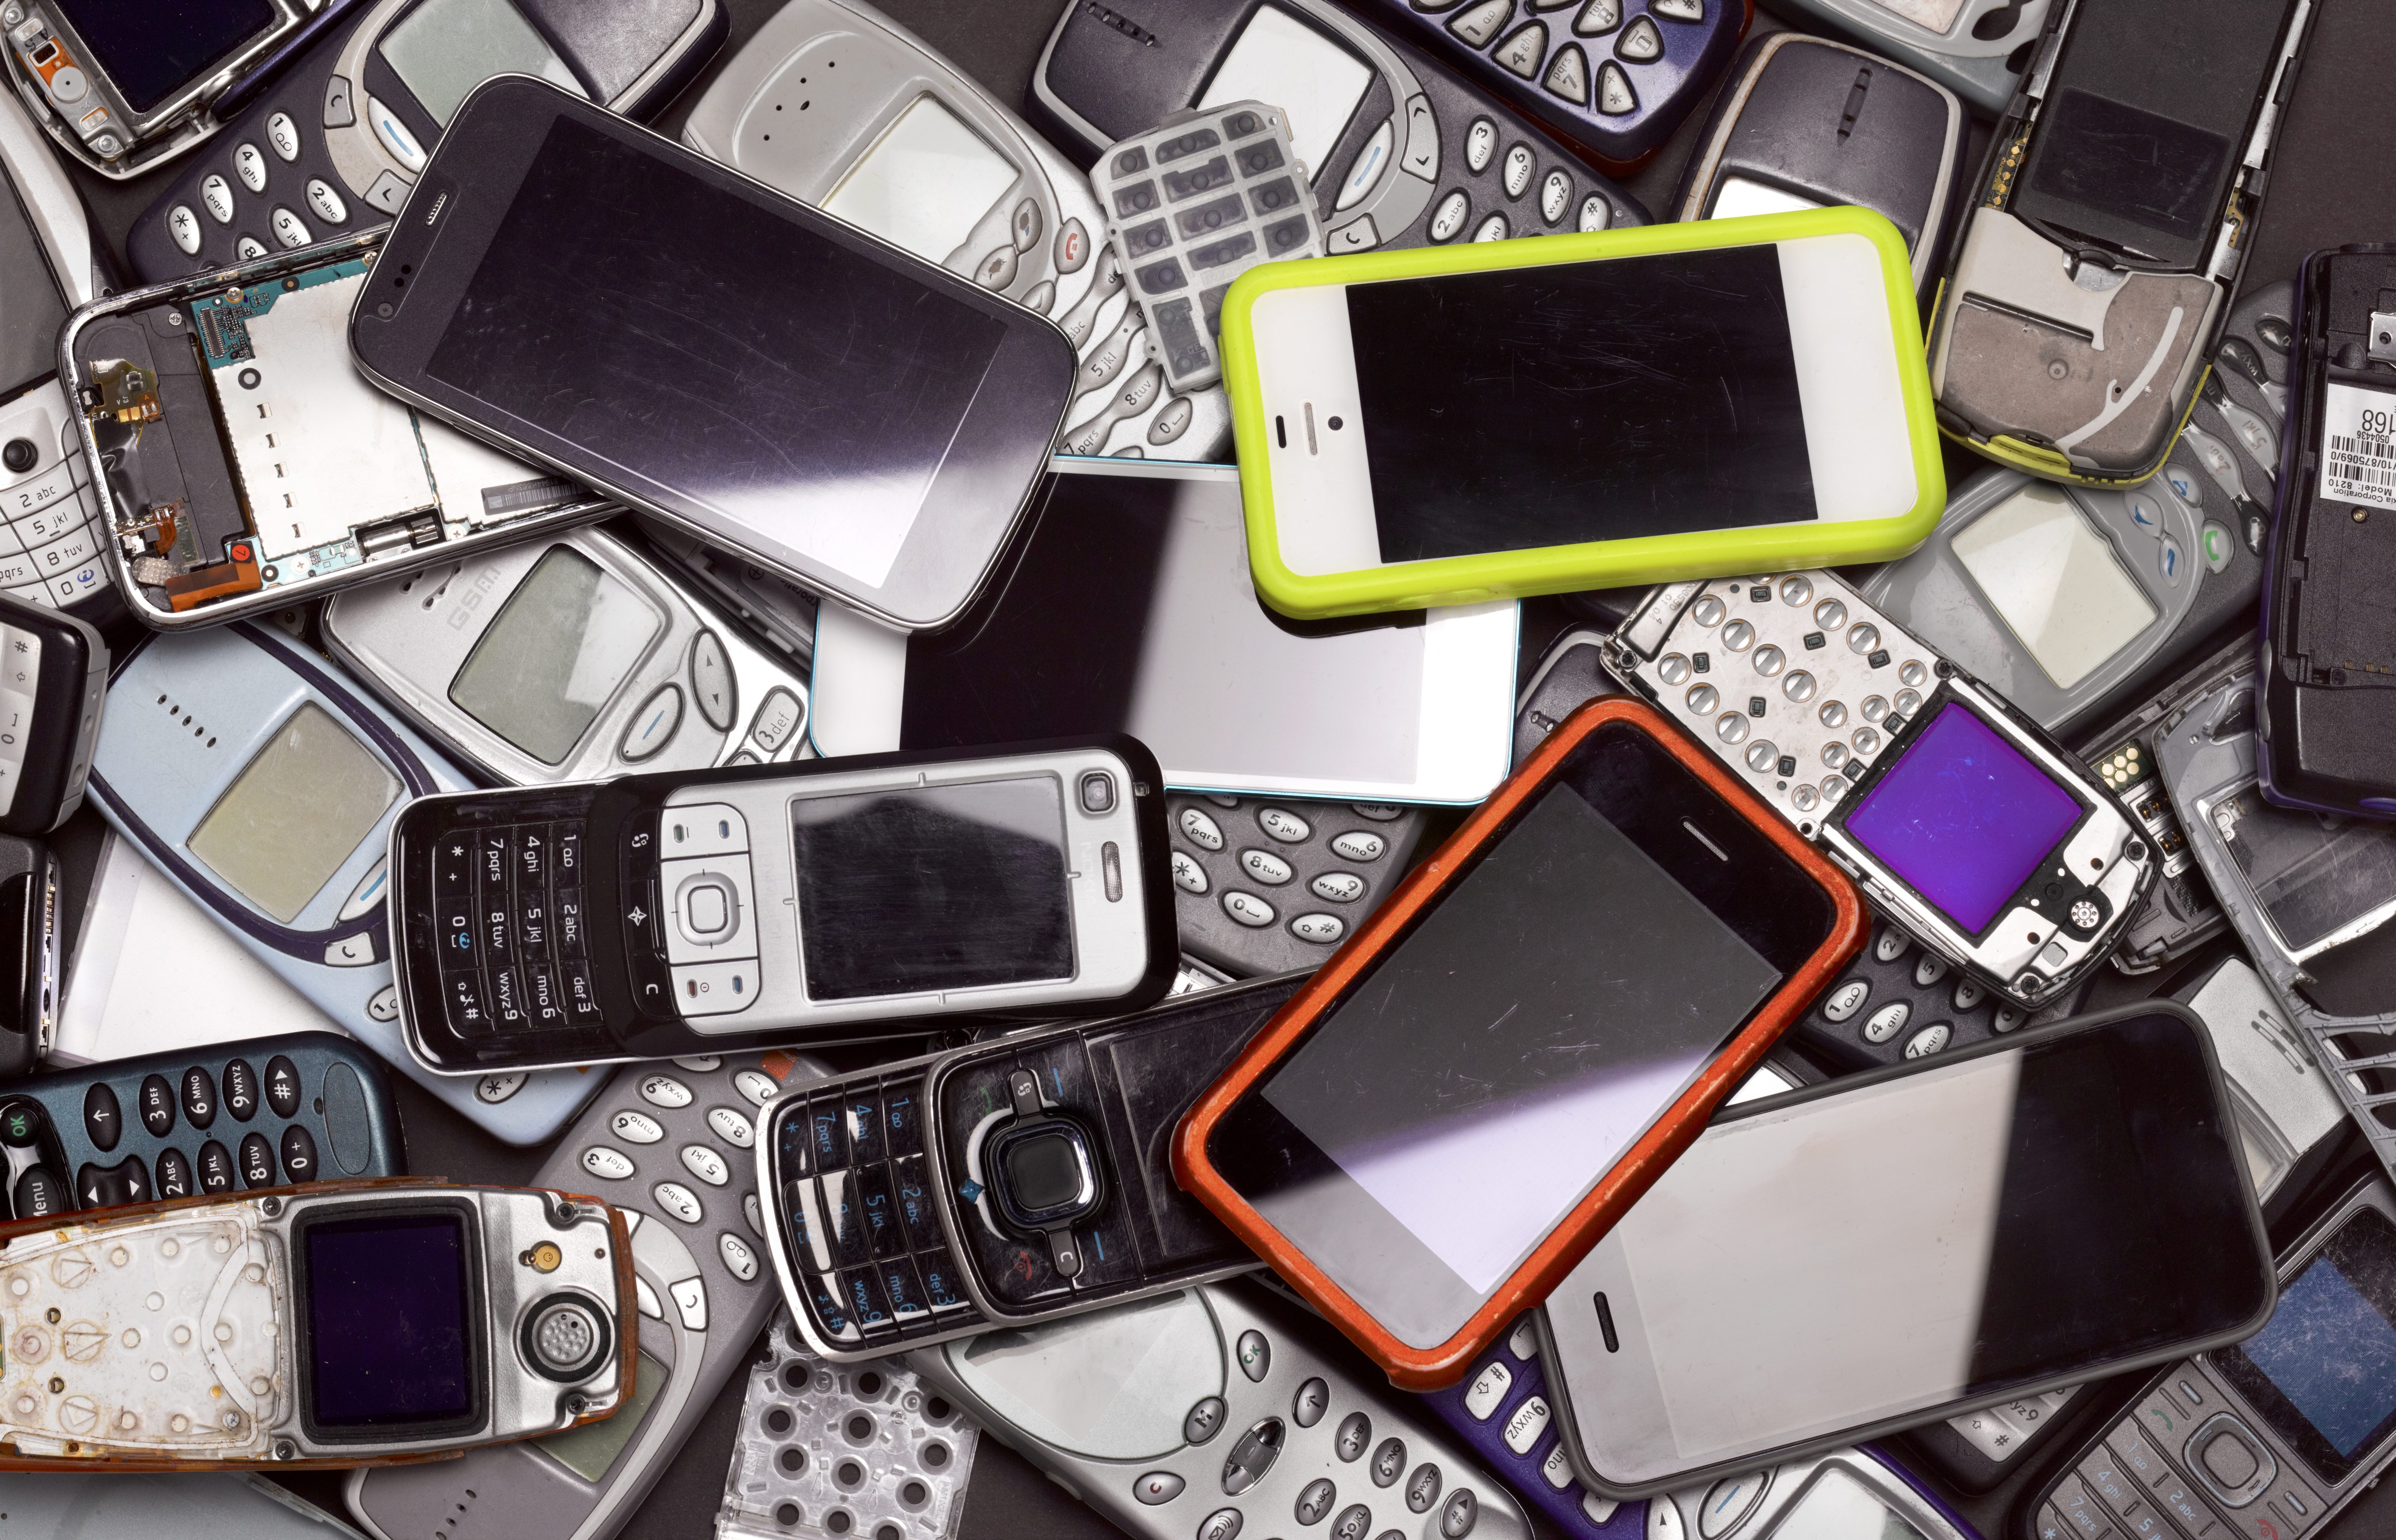 European Union  circular economy plan to require longer-life devices, more fix  options